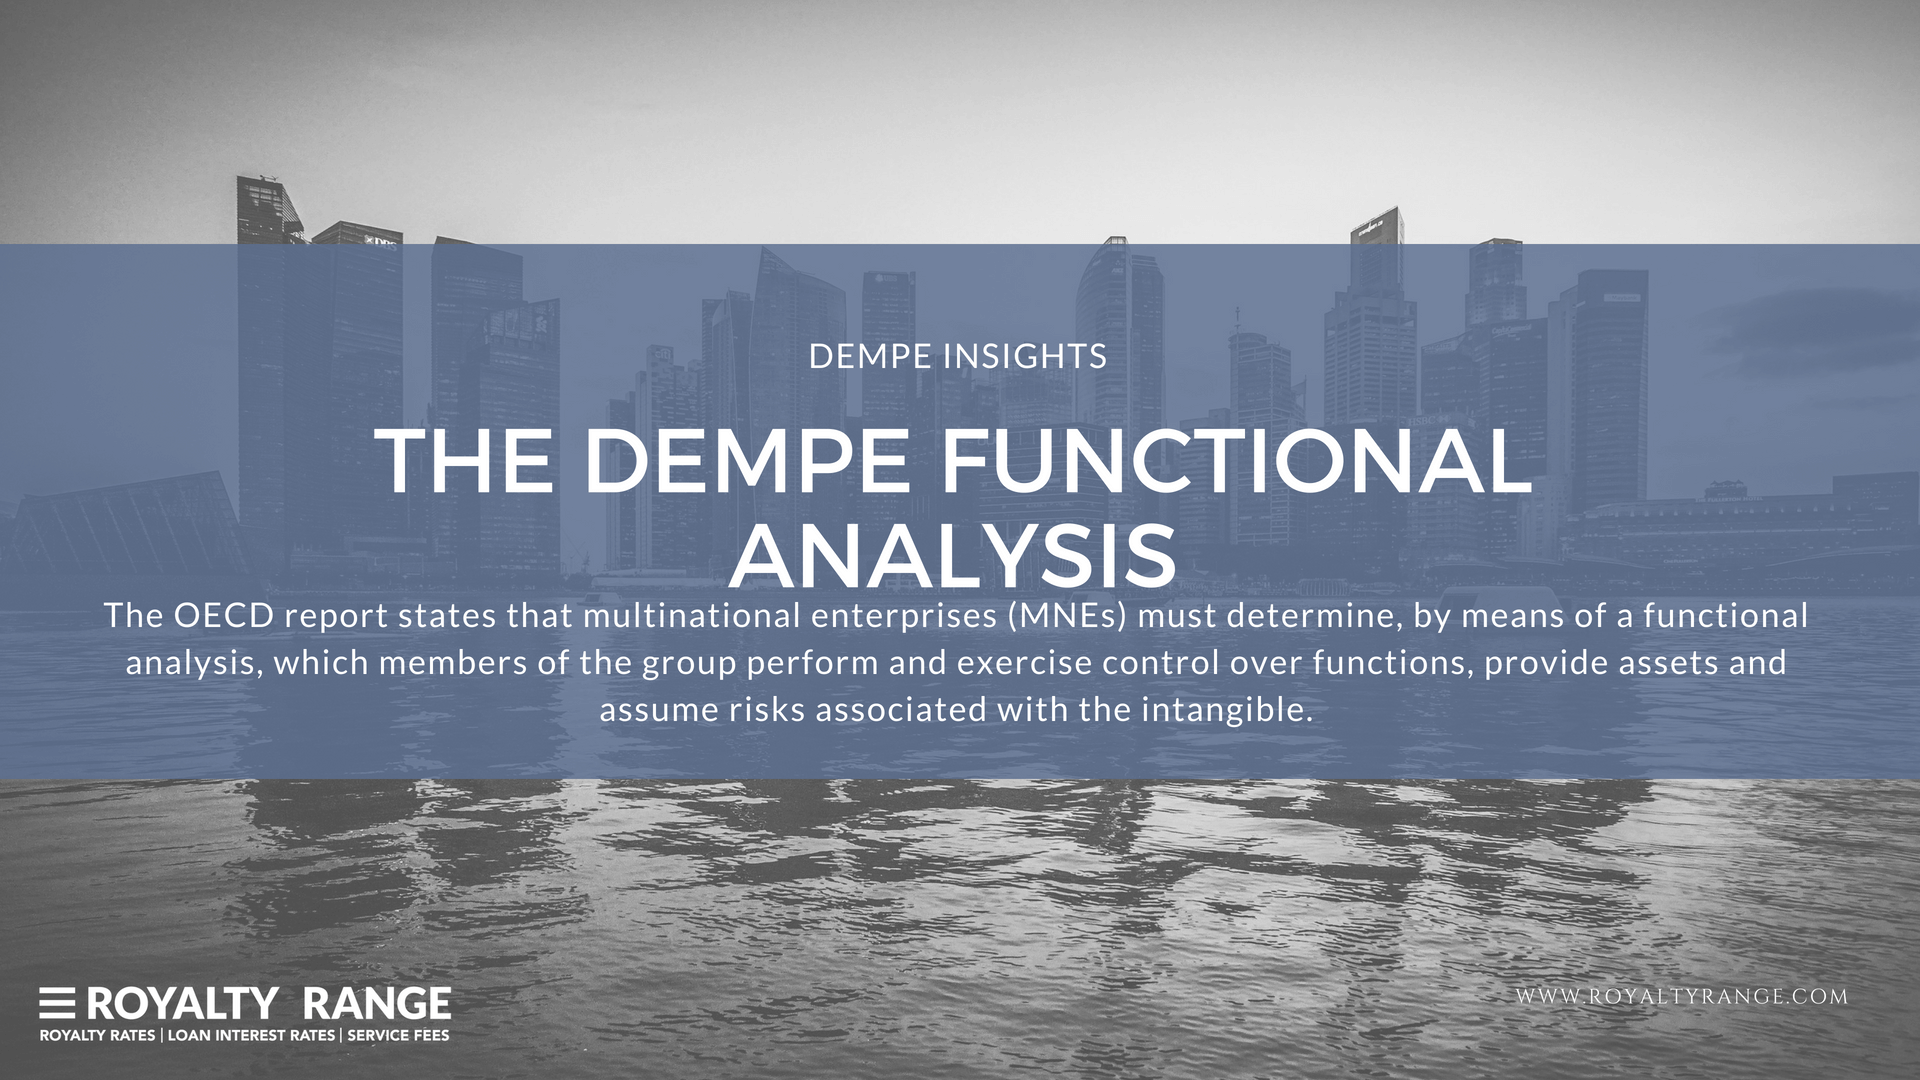 DEMPE functional analysis